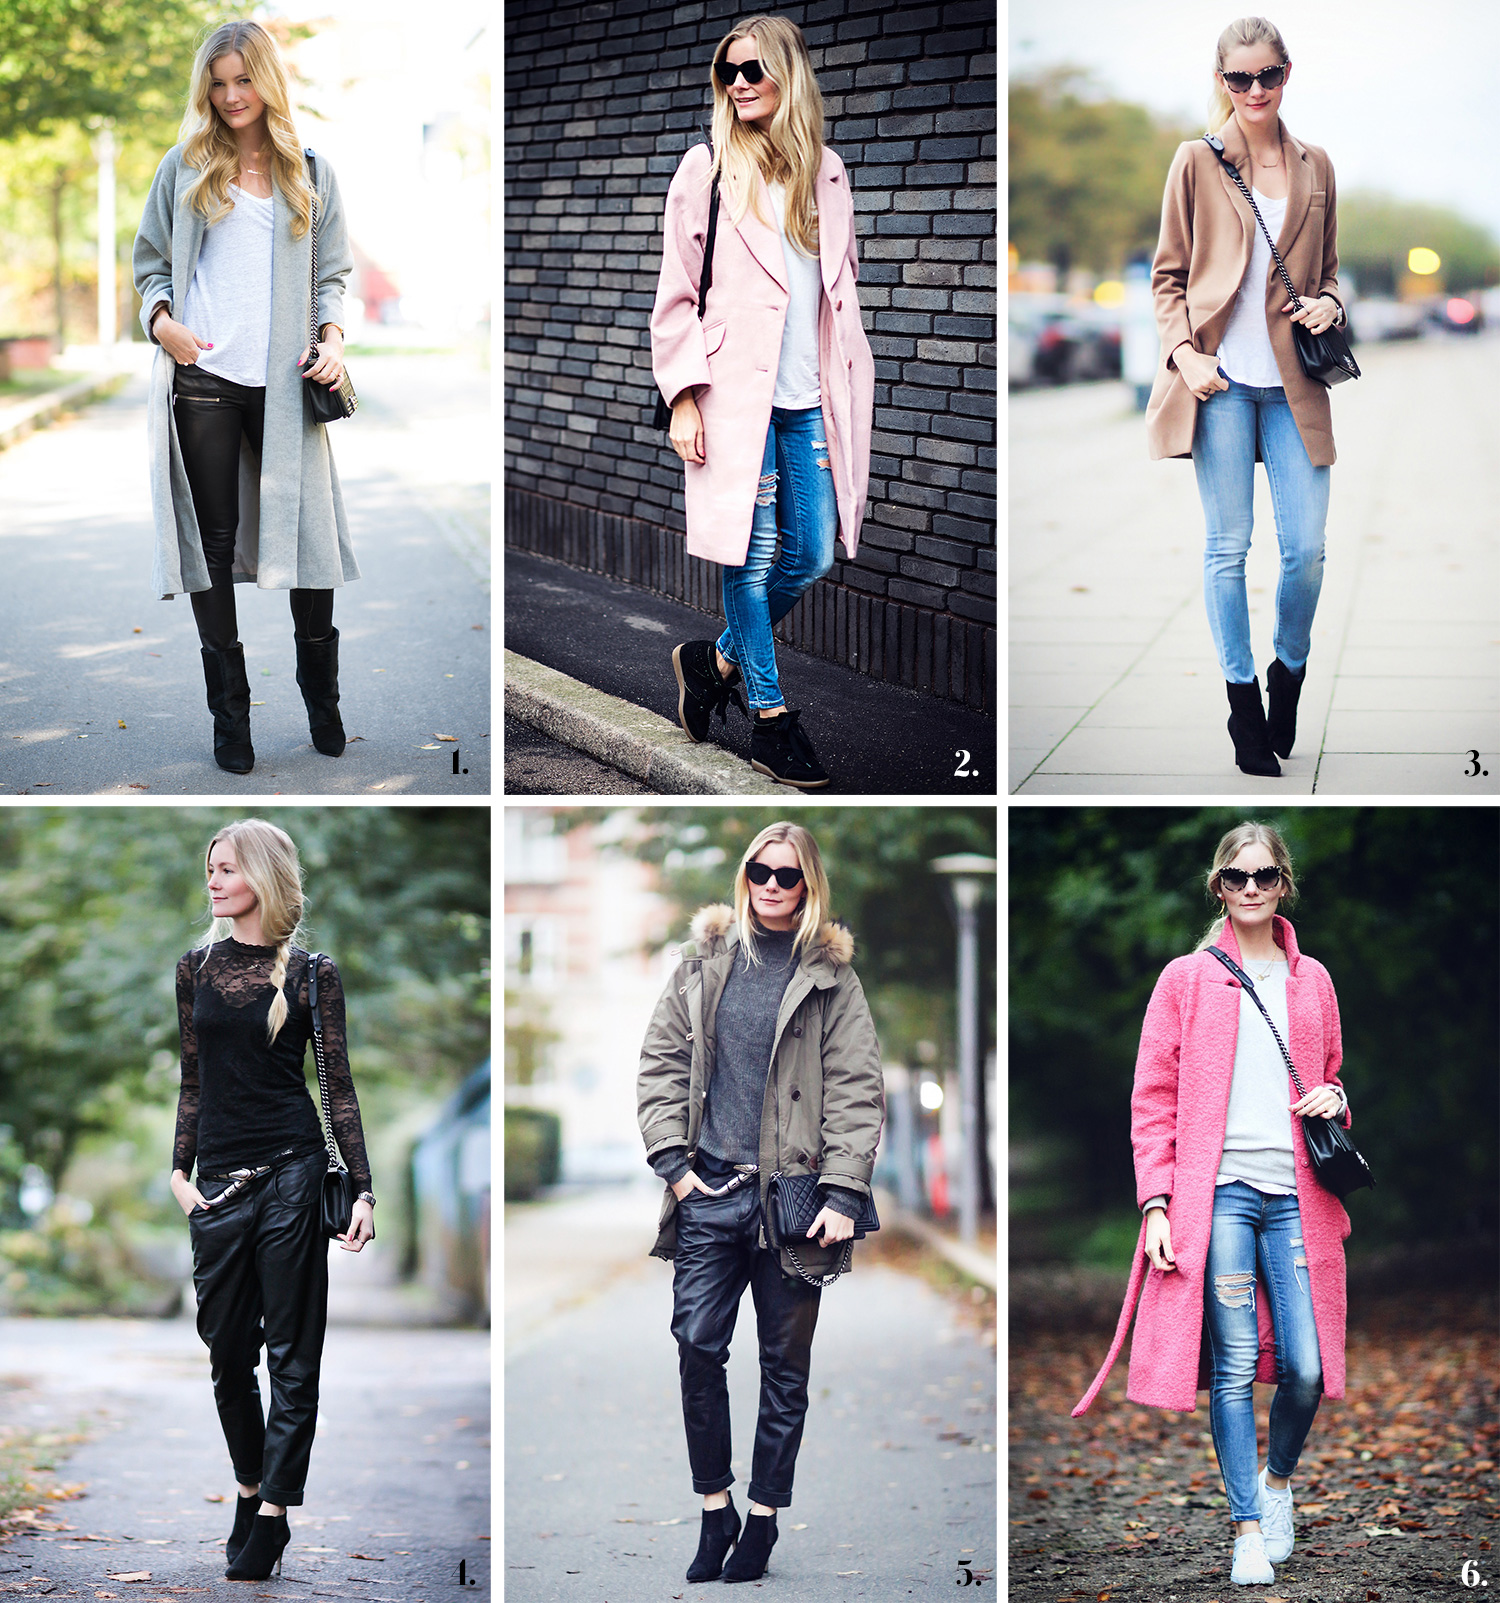 outfits@2x